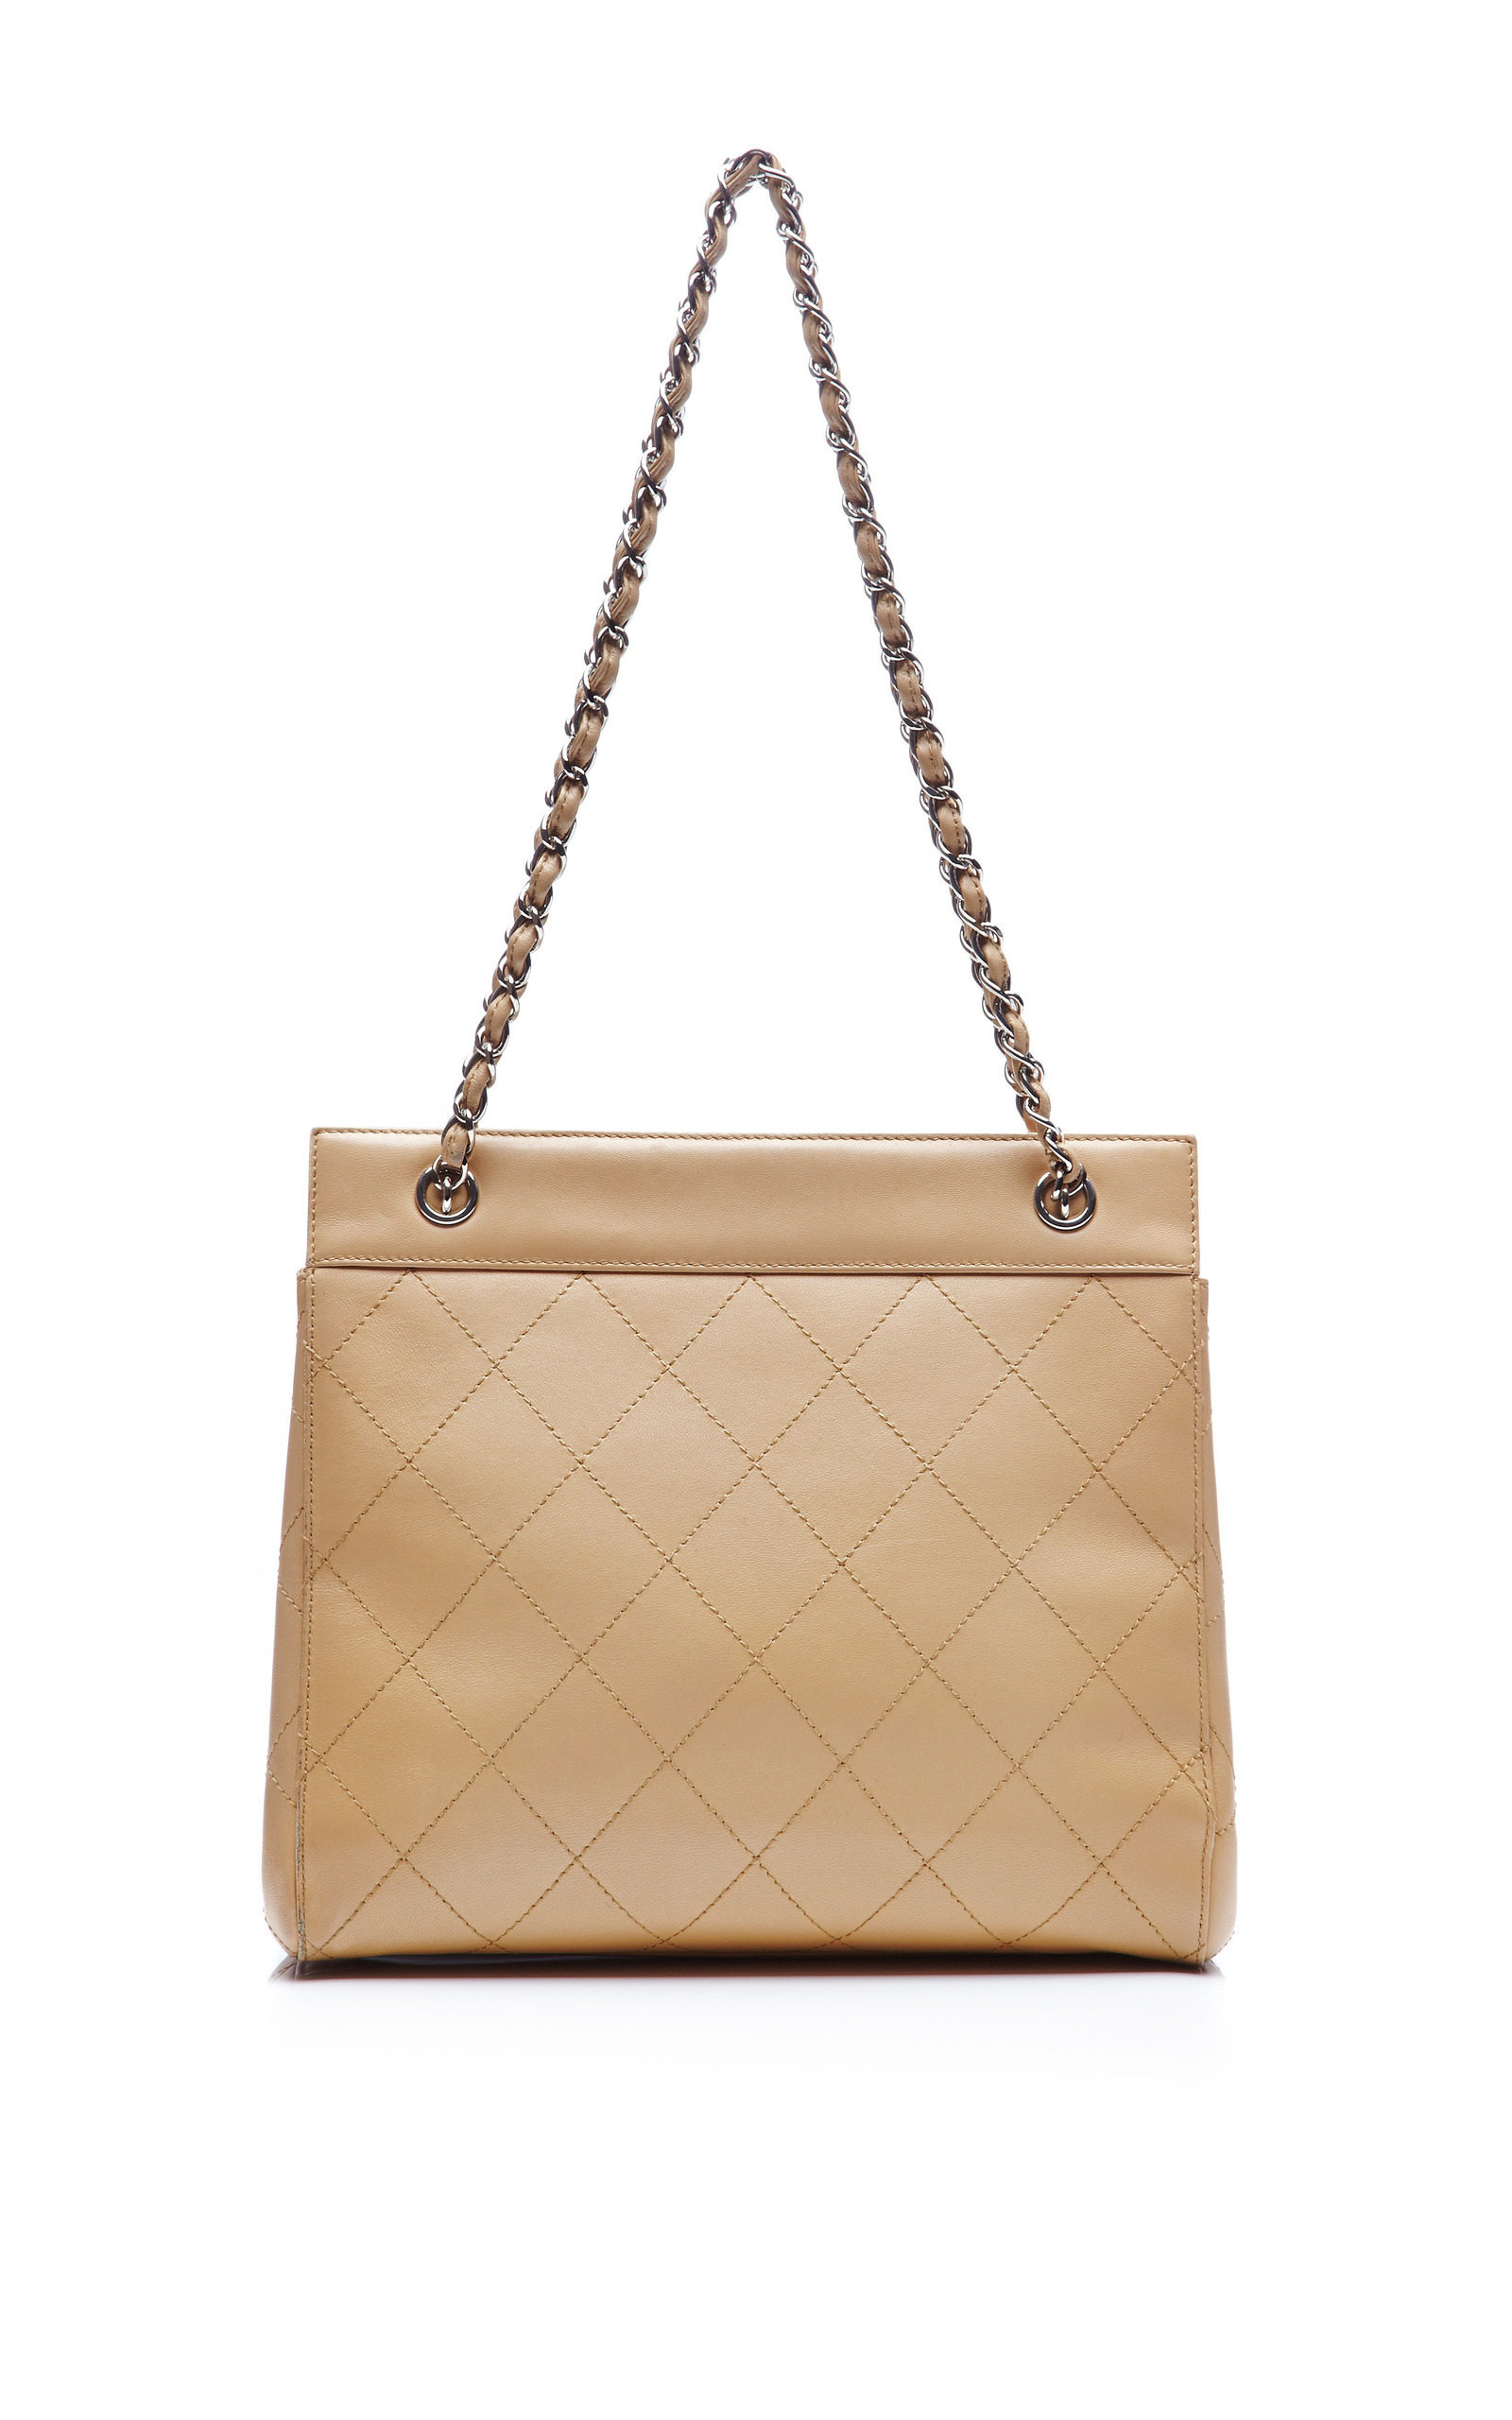 85fb631fa7ce Collectible JacketsChanel Beige Lambskin Quilted Tote Bag from What Goes  Around Comes Around. CLOSE. Loading. Loading. Loading. Loading. Loading